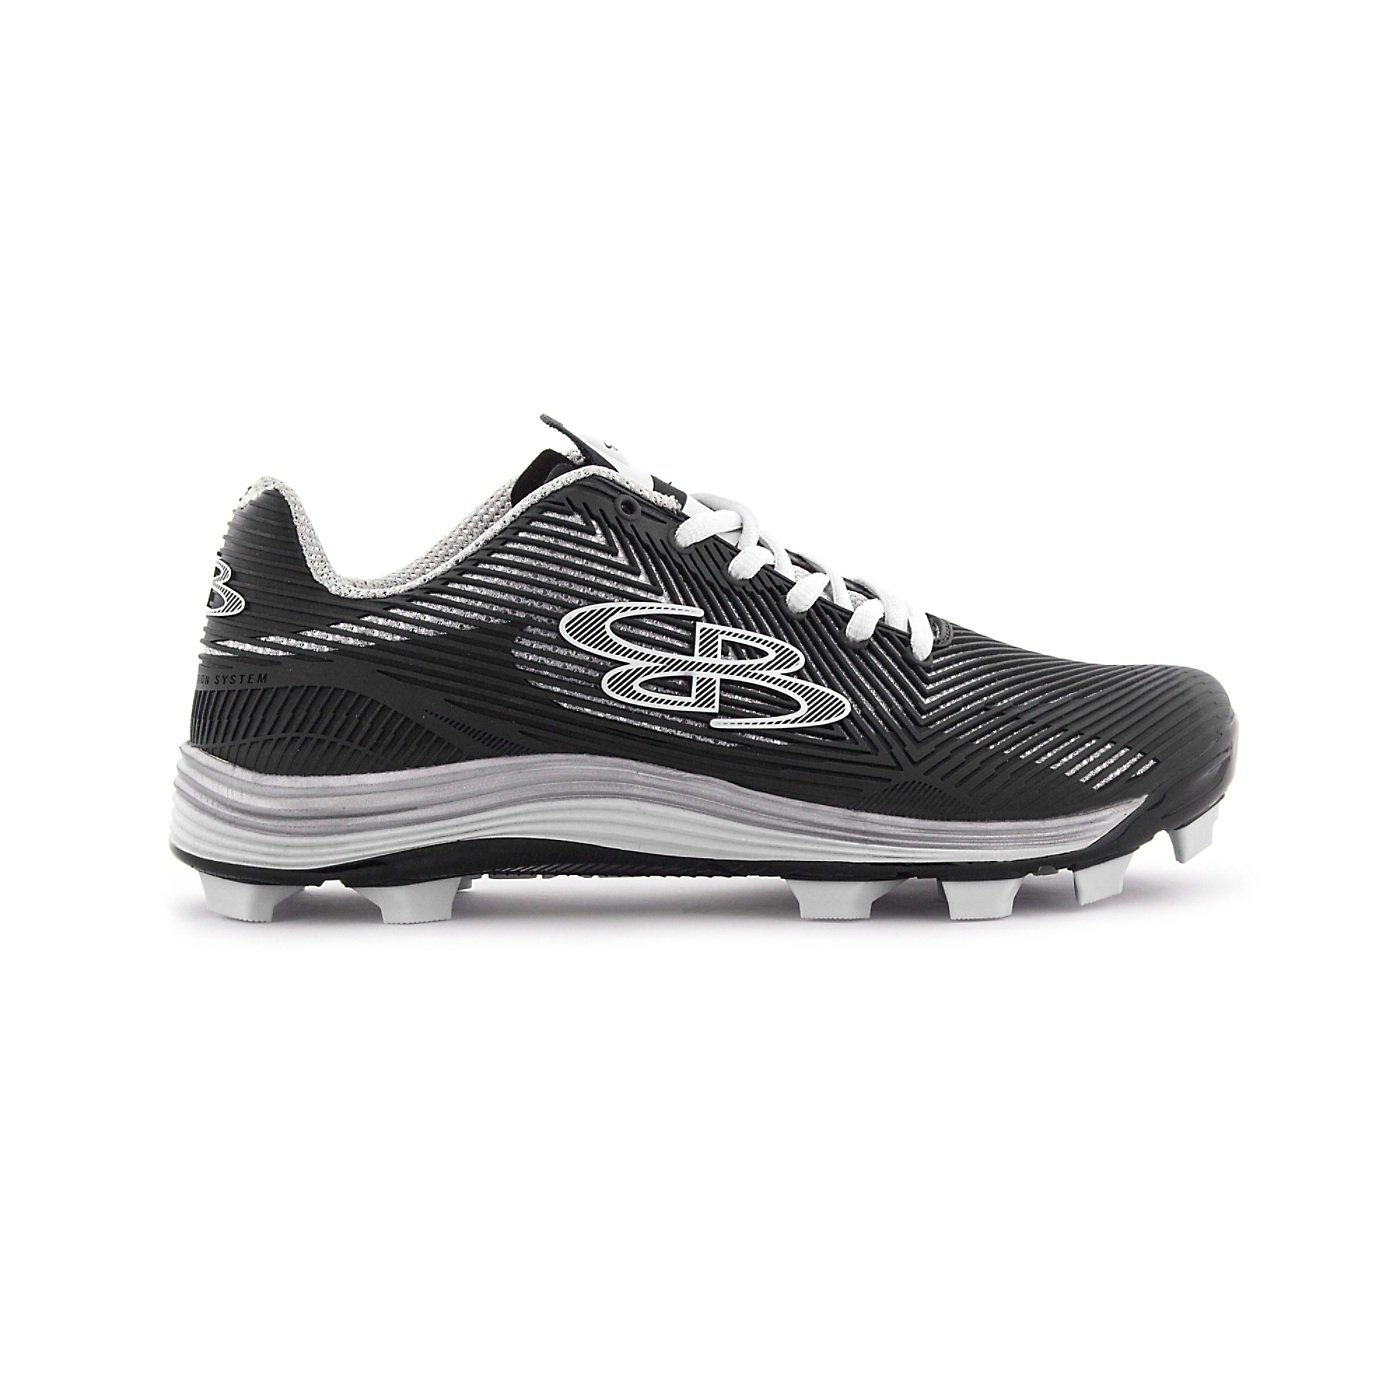 Boombah Women's Spotlight Molded Cleat Black/White - Size 9.5 by Boombah